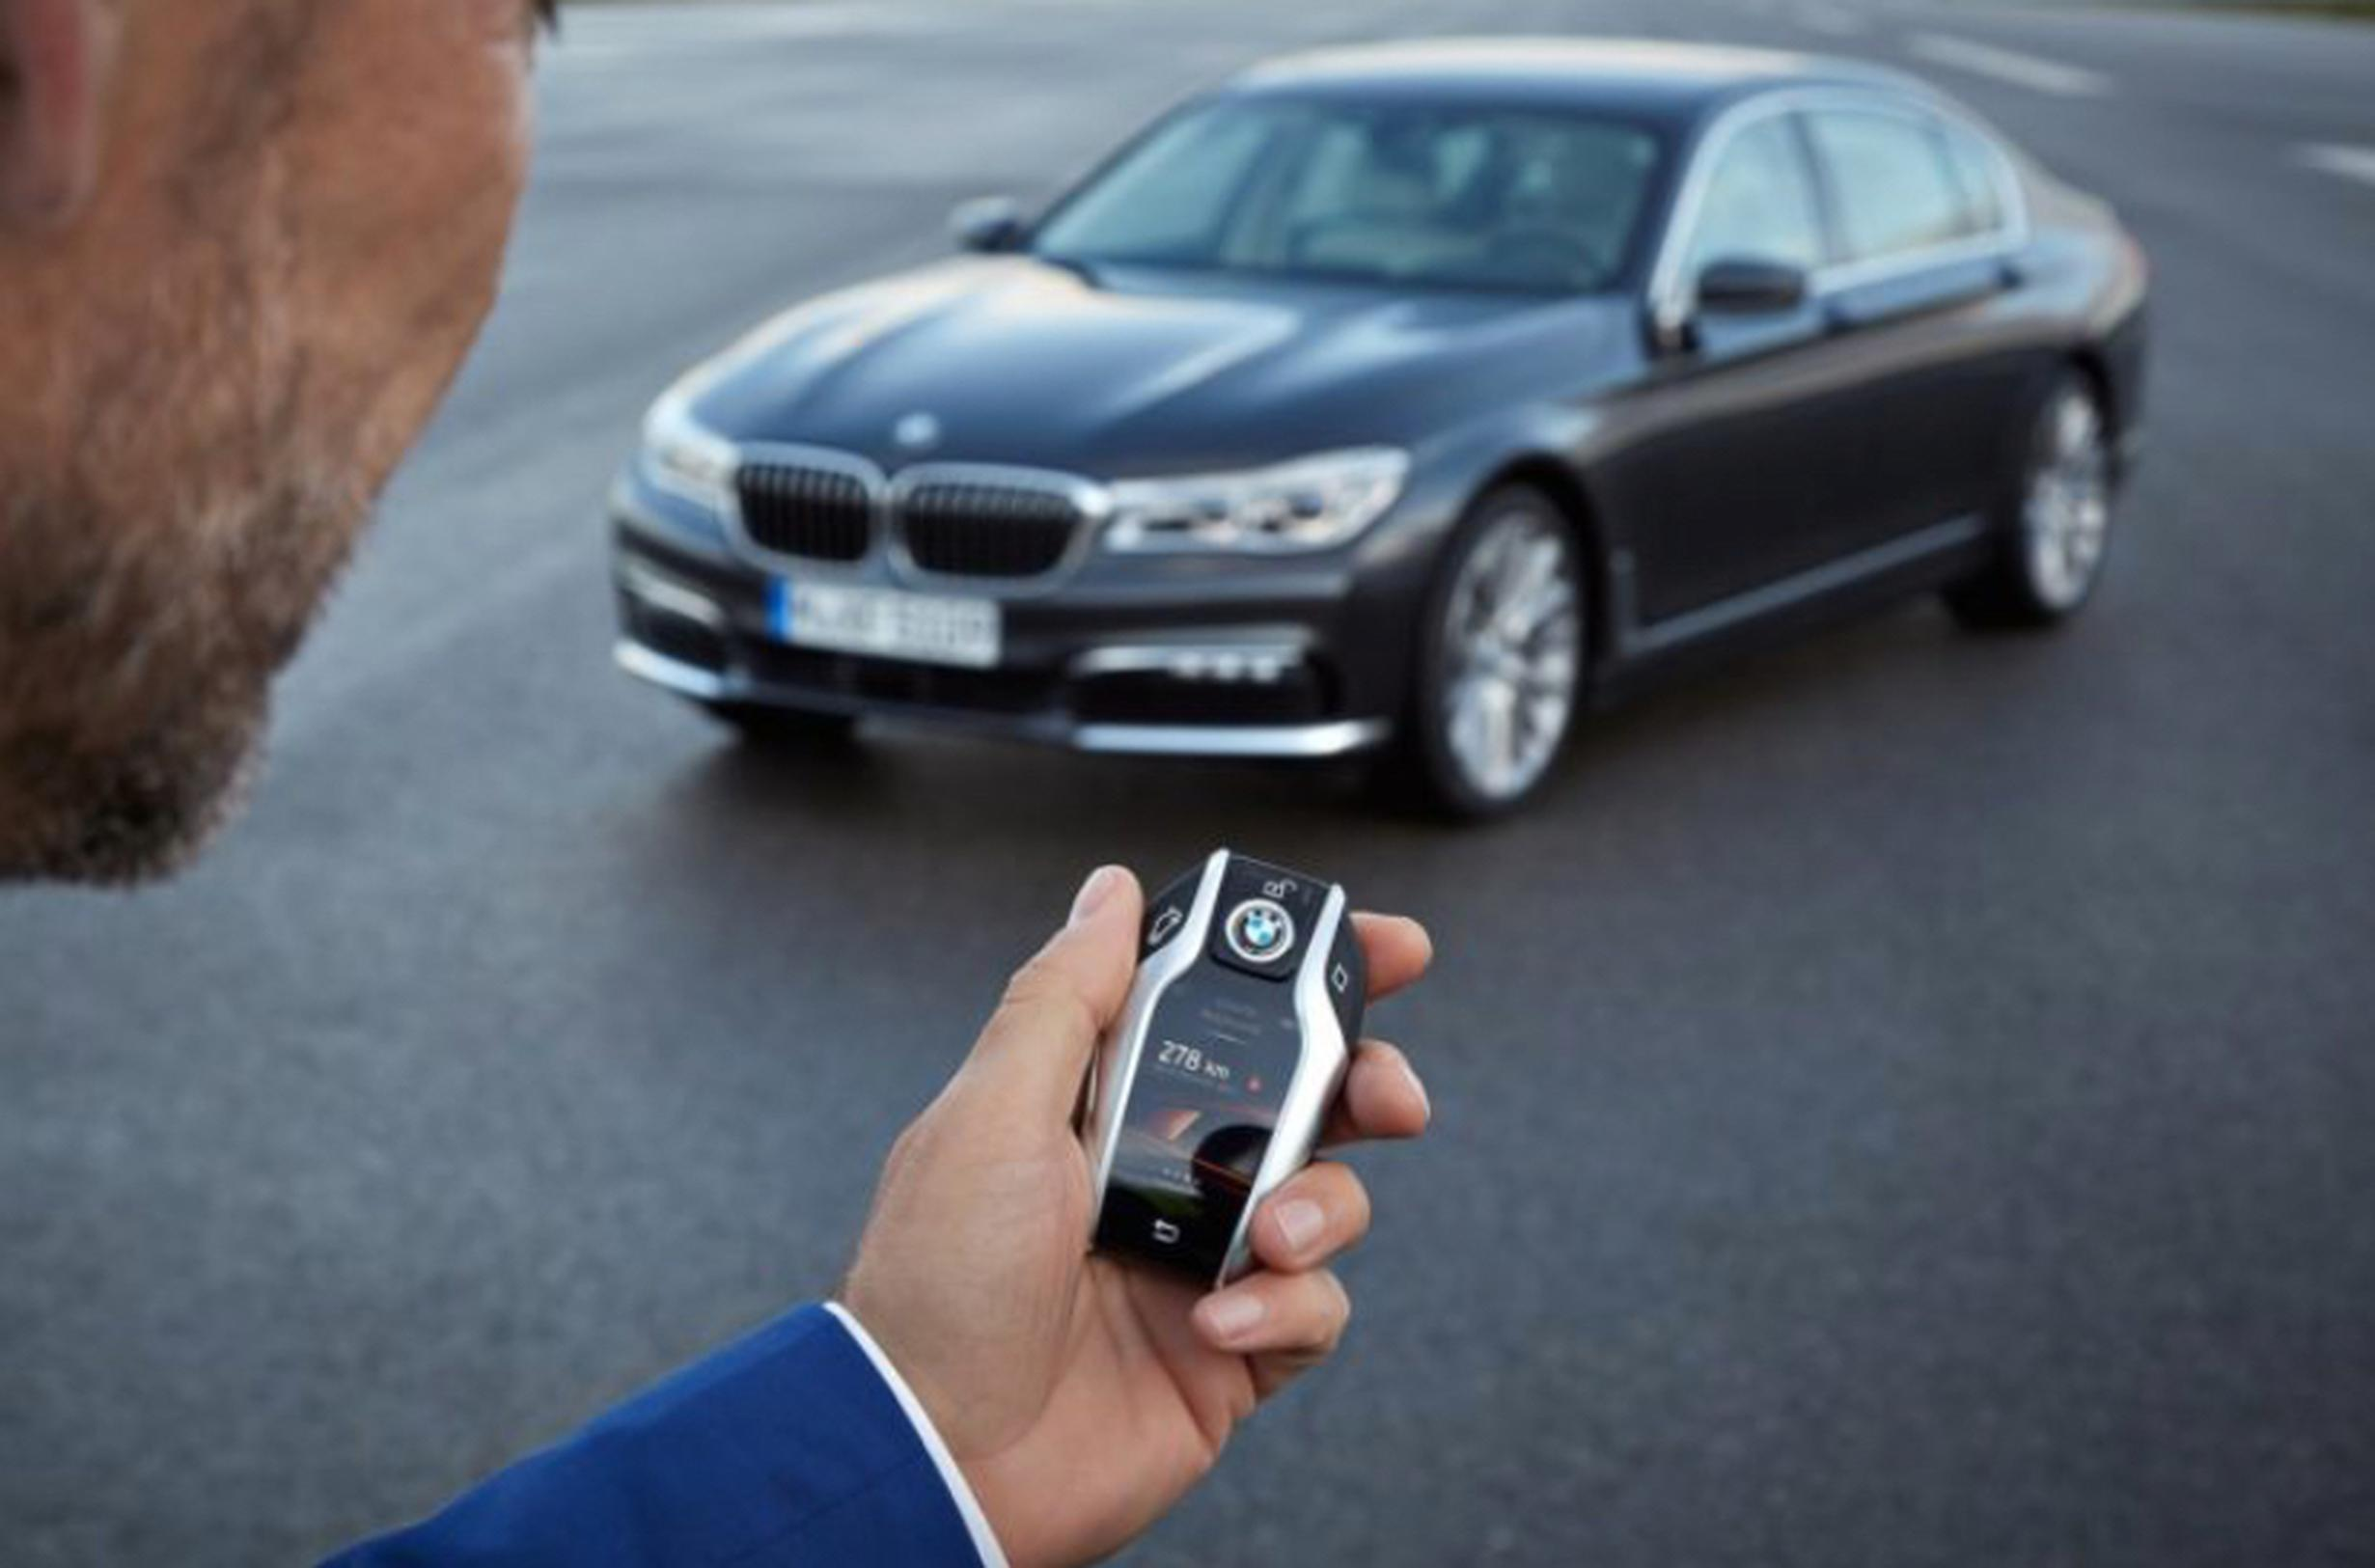 Remote control parking is one of the features of BMW`s 7 Series